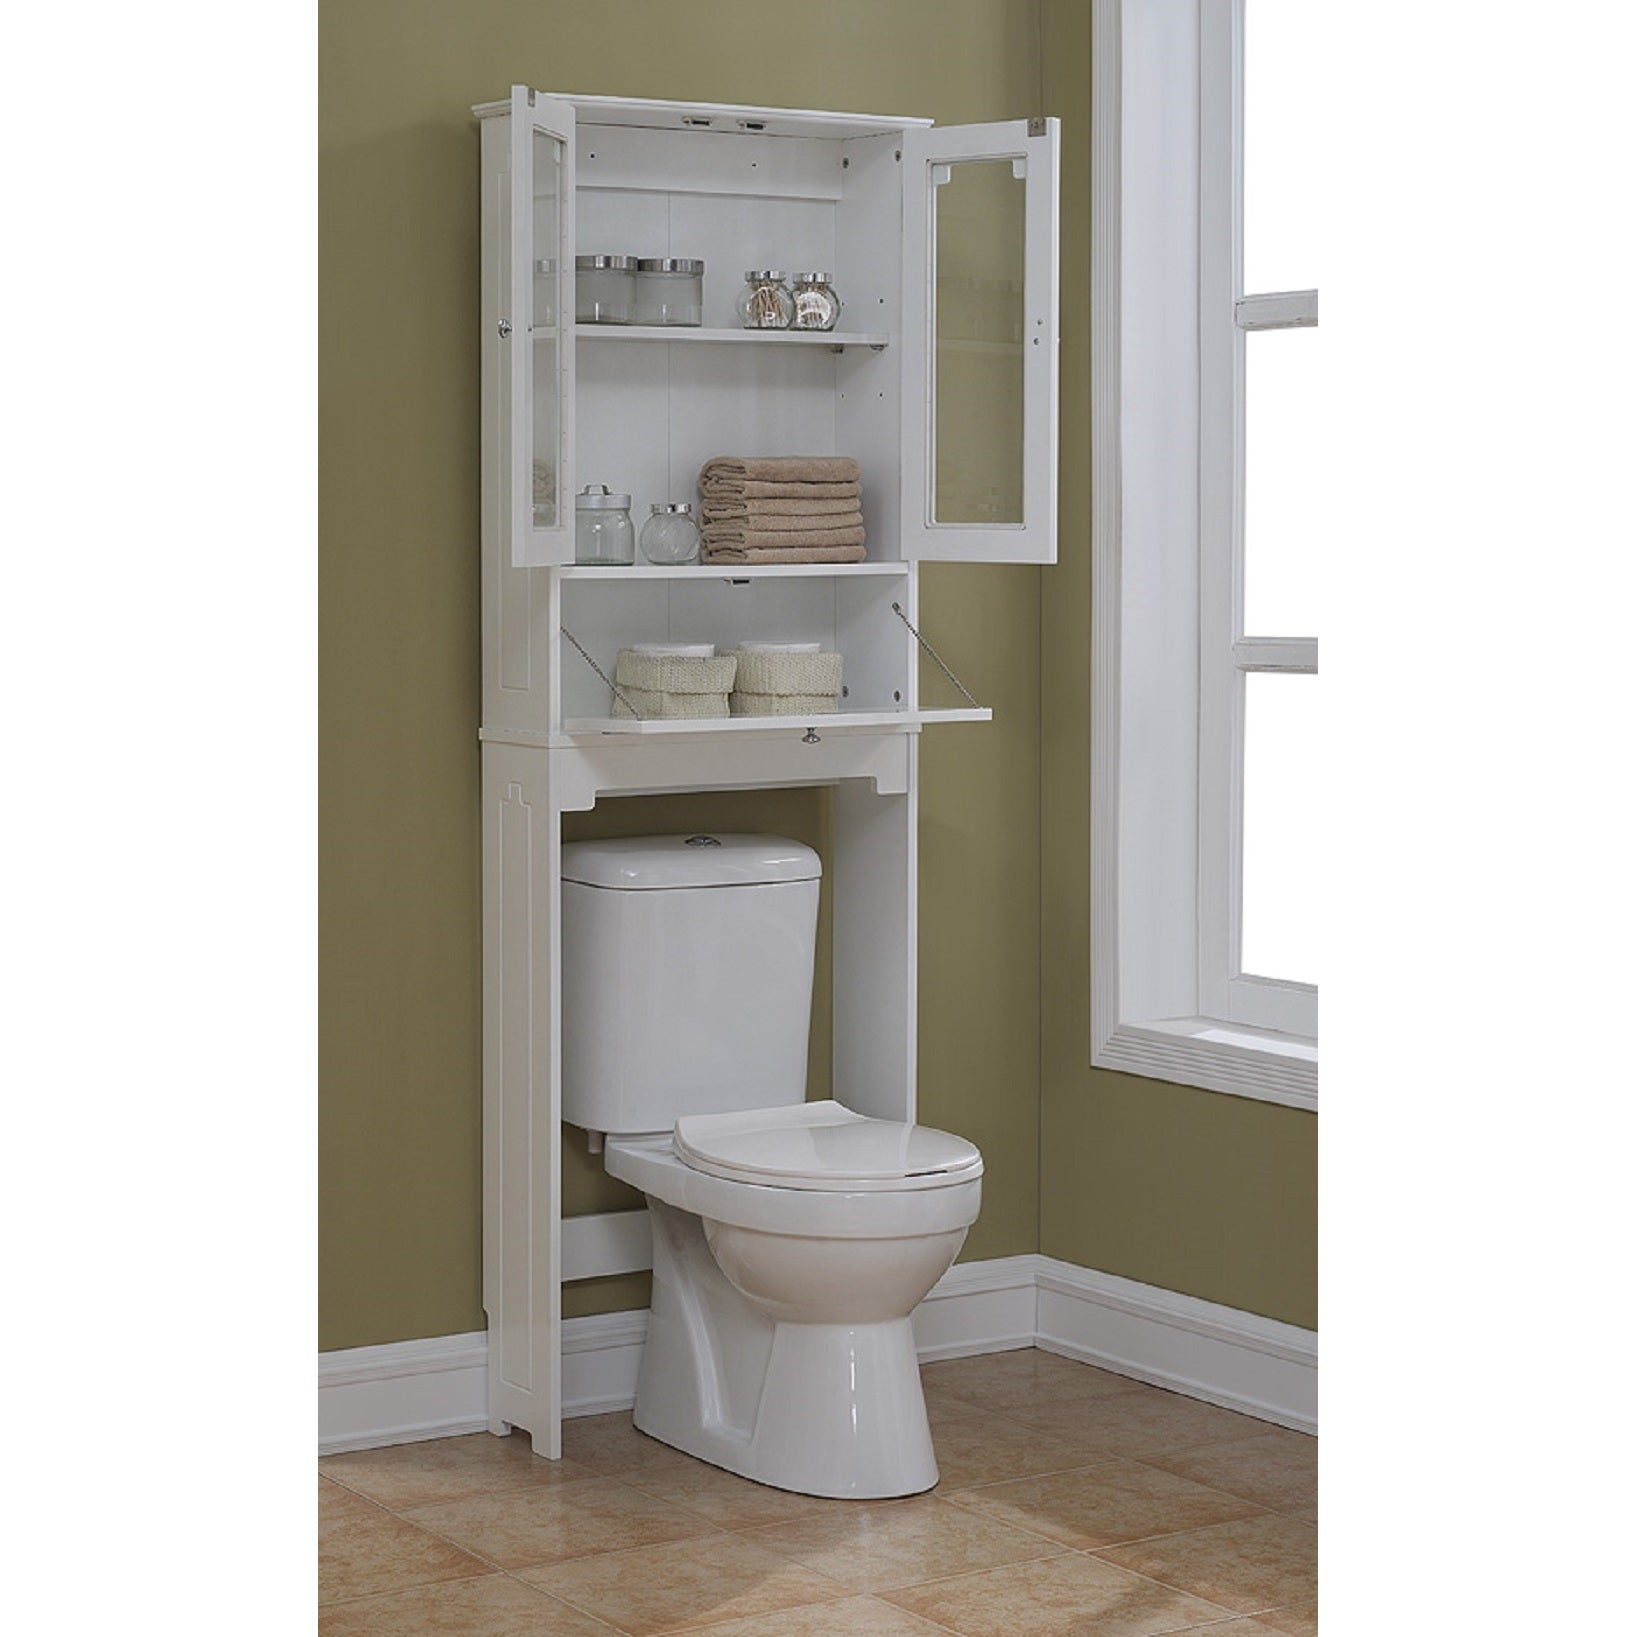 with small cabinets standing over mirror vanity freestanding toilet tower sets vanities rack shelving bathroom cupboard free shelf towel best storage tall closet the linen cabinet